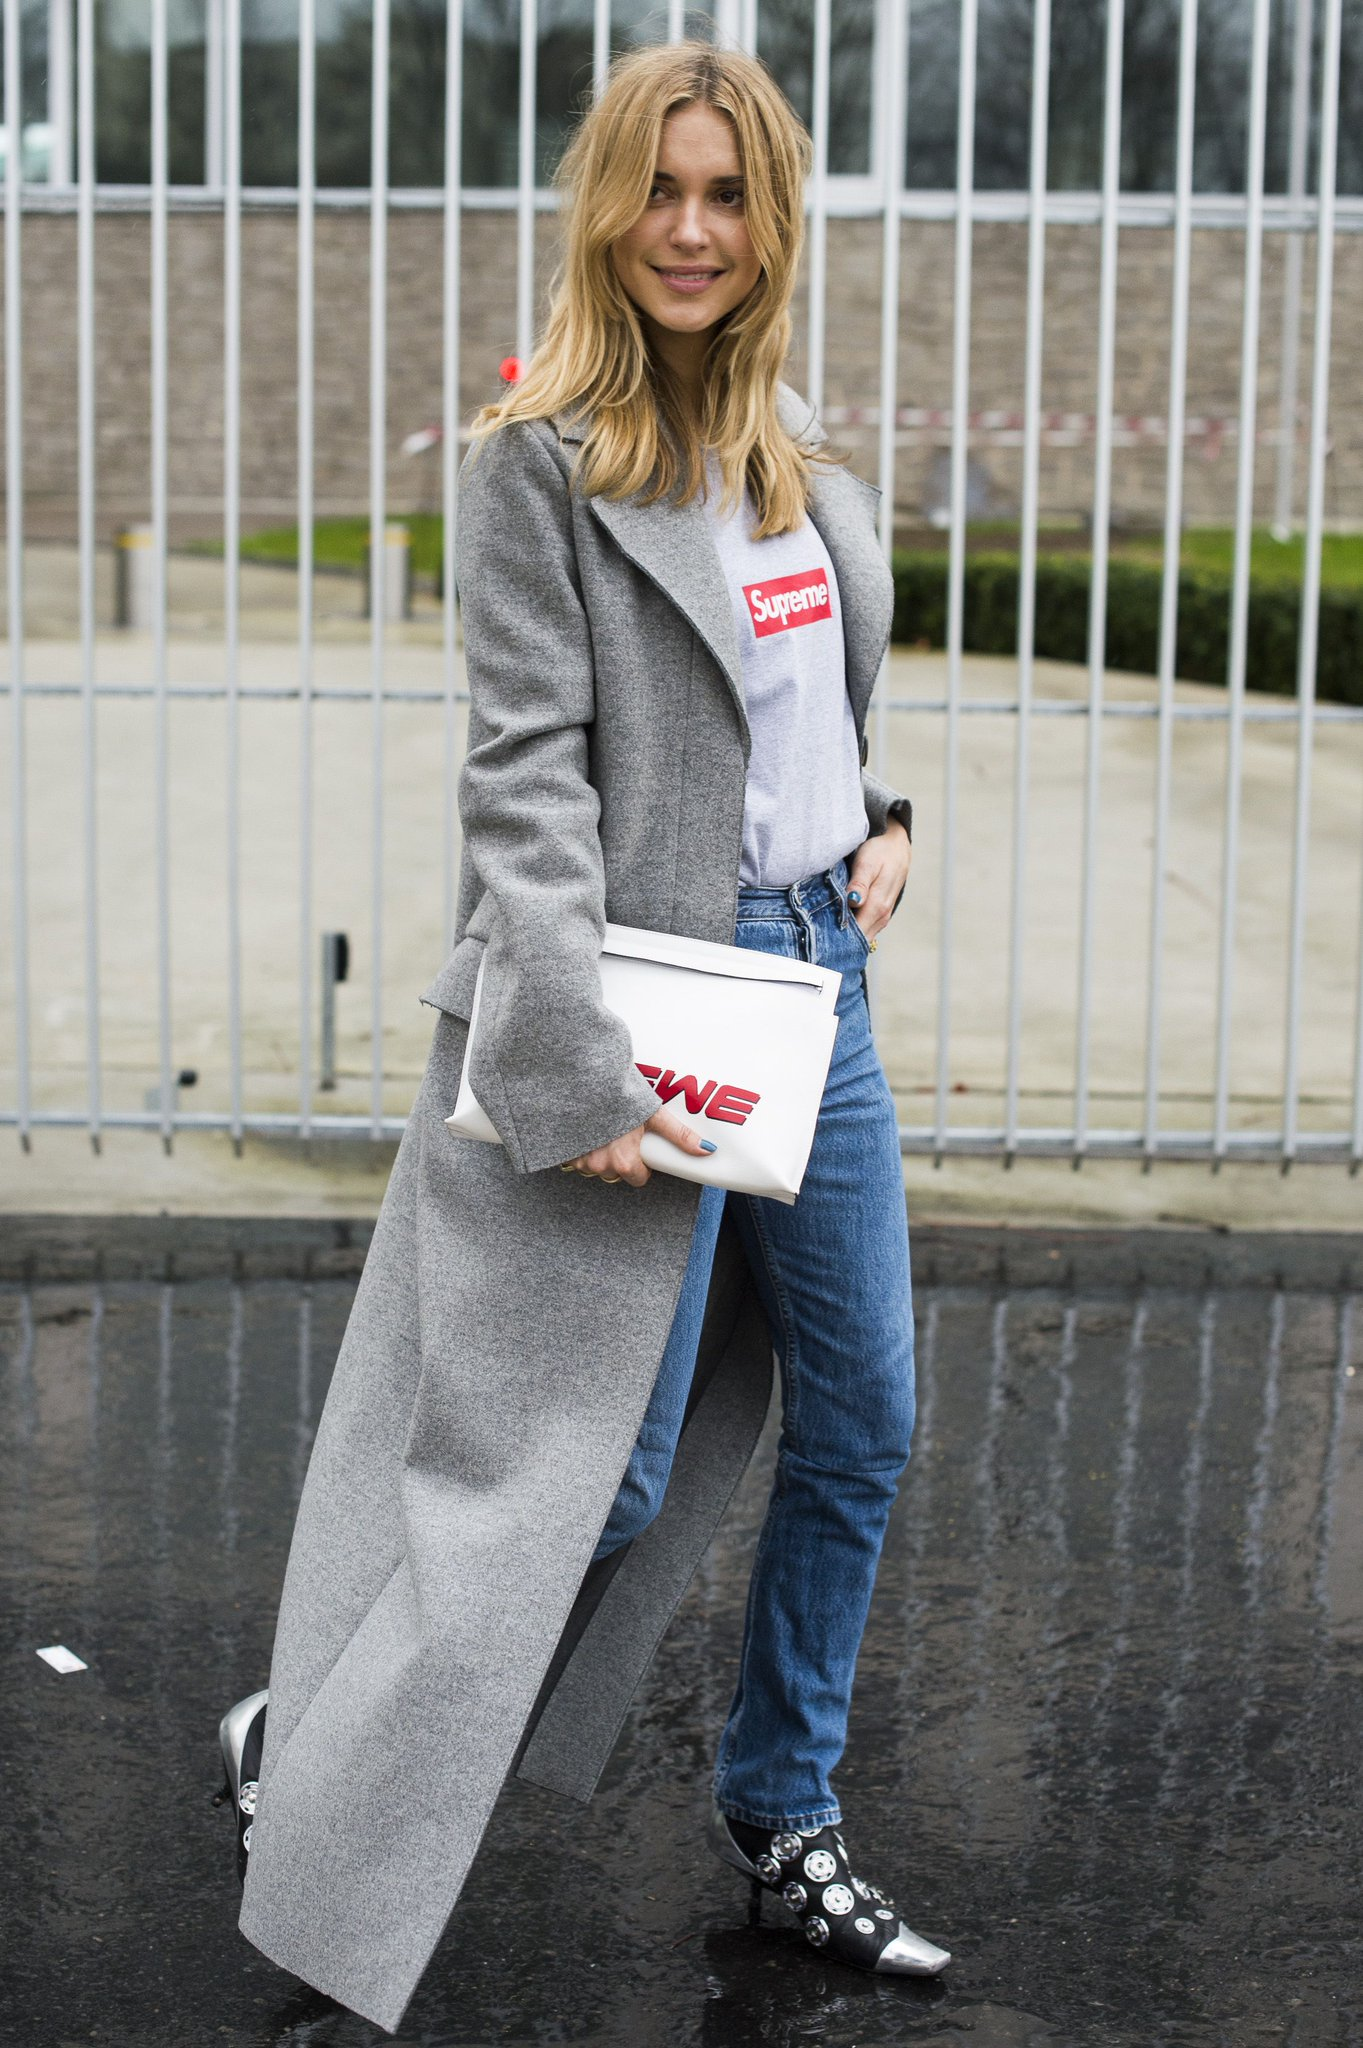 Need a helping hand to nail street style? We've got all the style inspiration you need: https://t.co/hPLJRrv7gf https://t.co/Nsol8ymz3Z